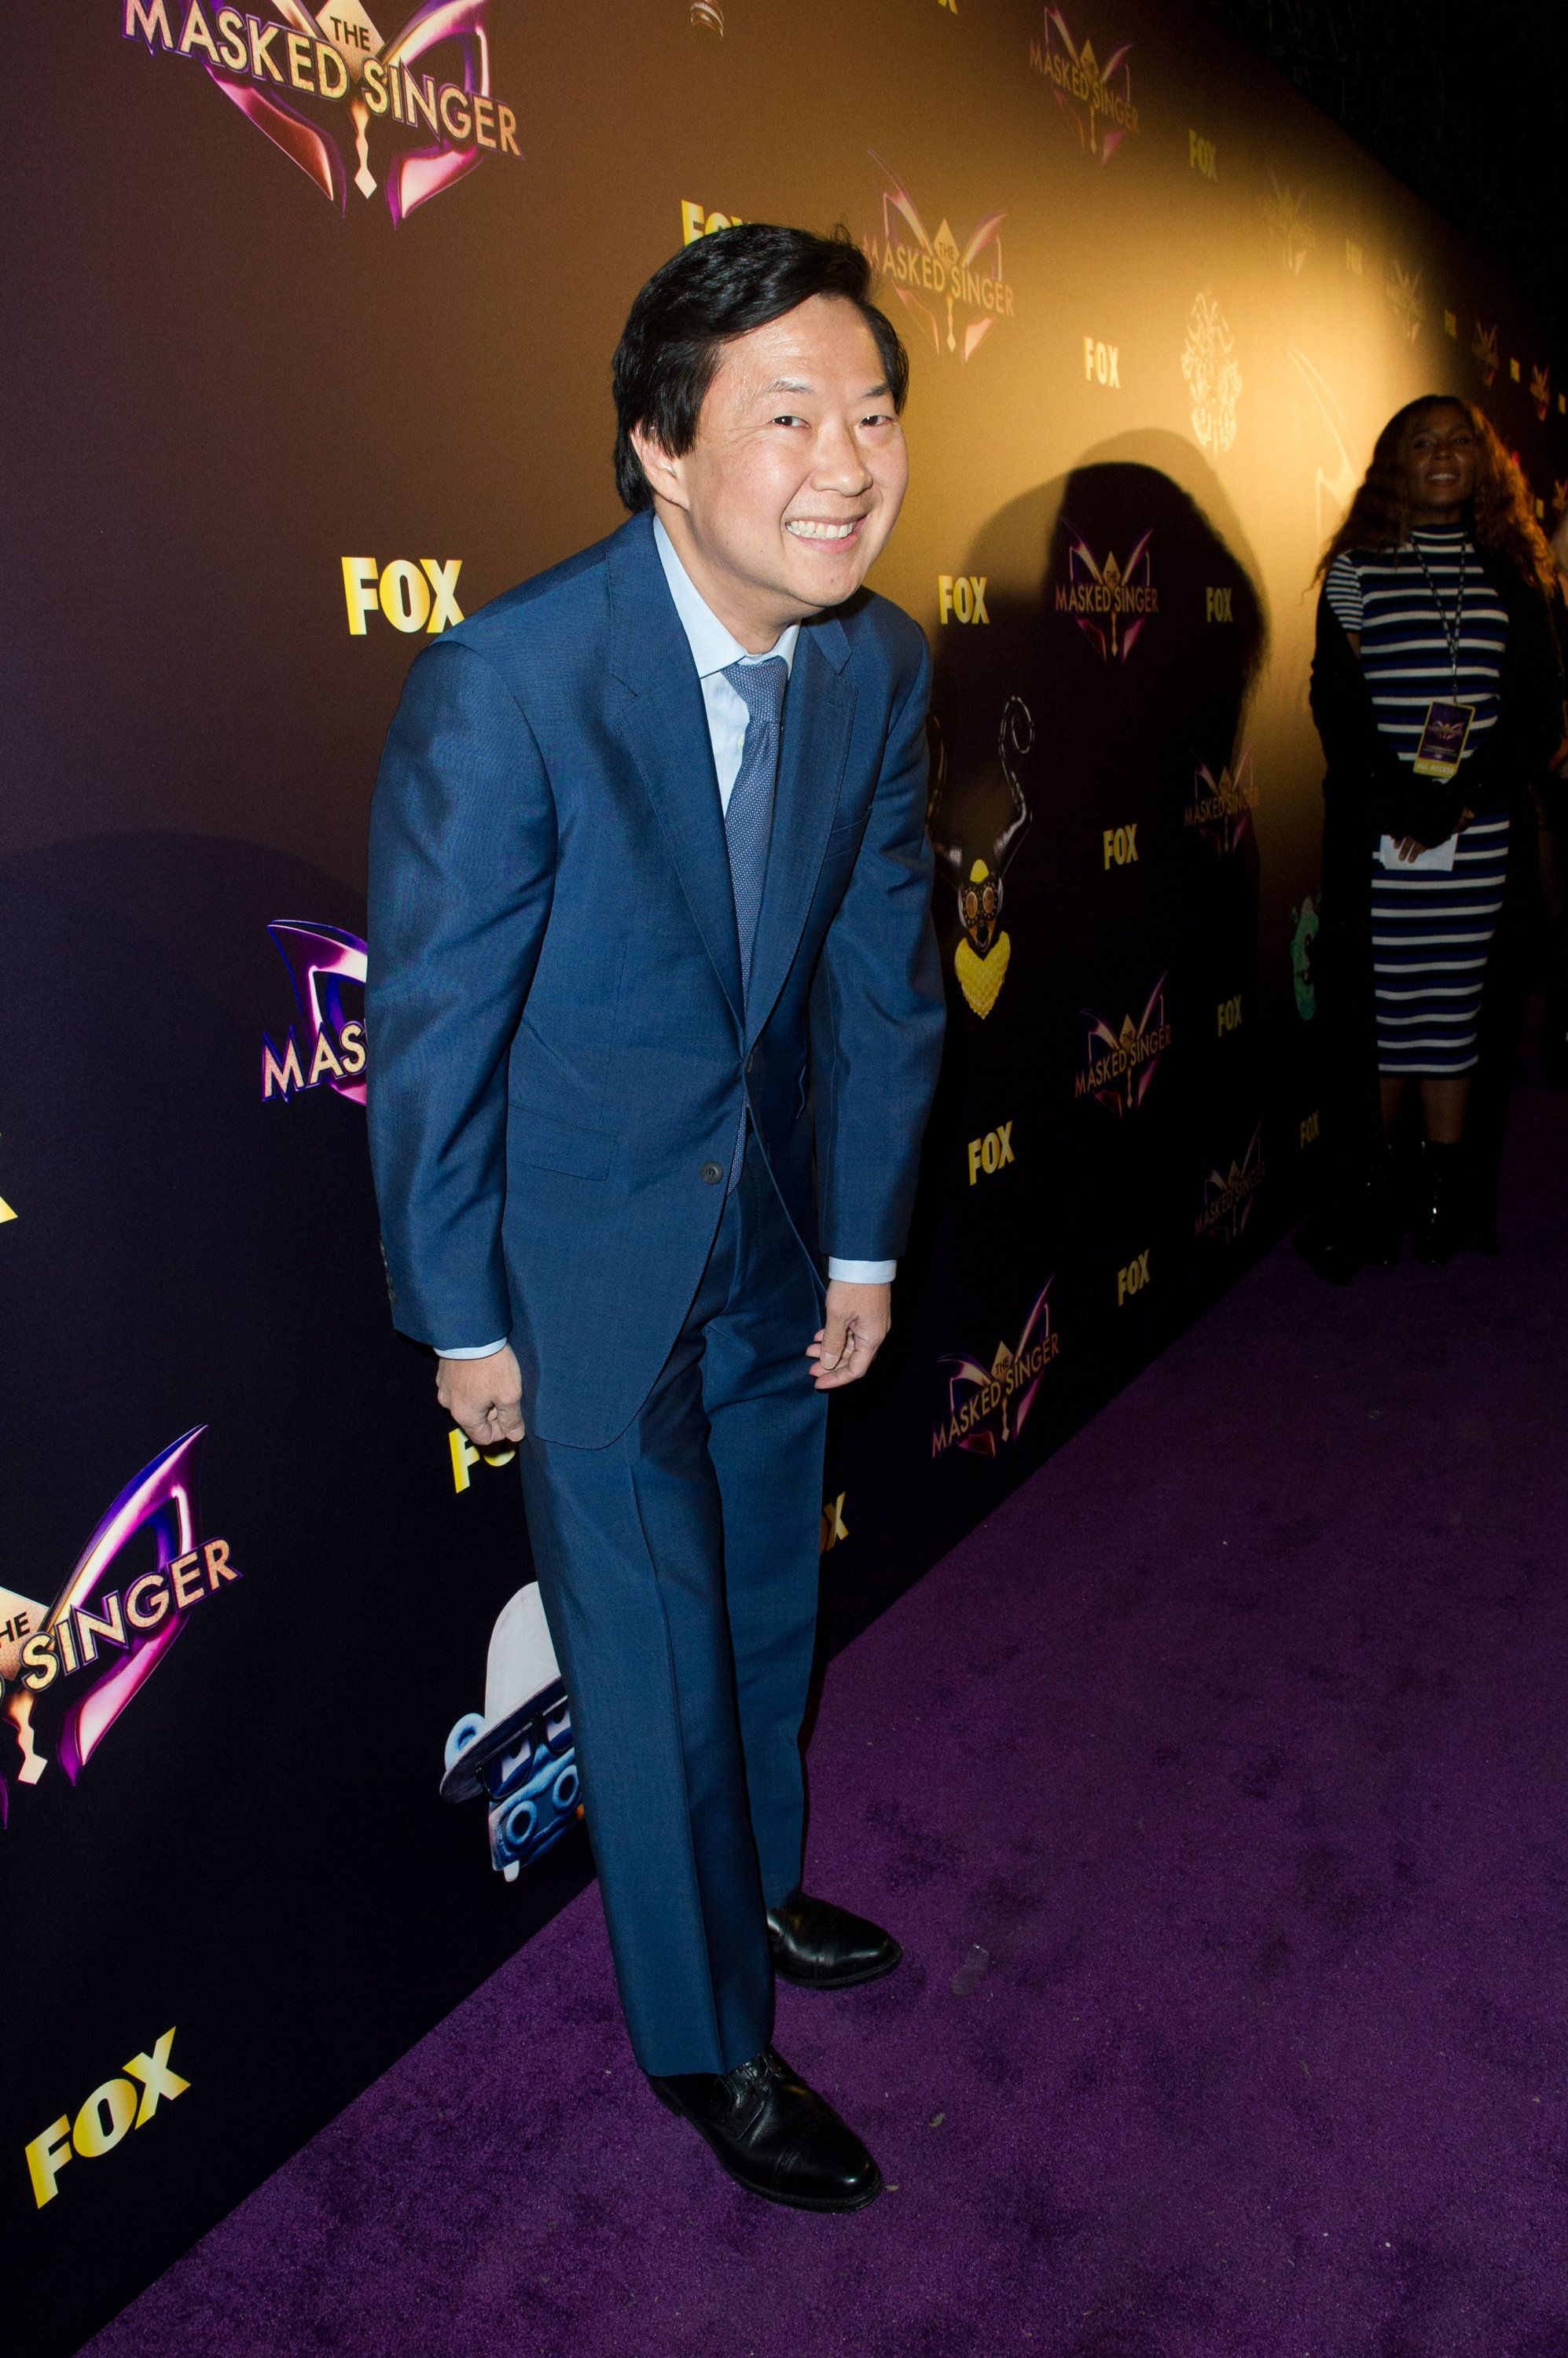 LOS ANGELES, CALIFORNIA - DECEMBER 13: Ken Jeong attends Fox's 'The Masked Singer' Premiere Karaoke Event at The Peppermint Club on December 13, 2018 in Los Angeles, California. (Photo by Rachel Luna/Getty Images)